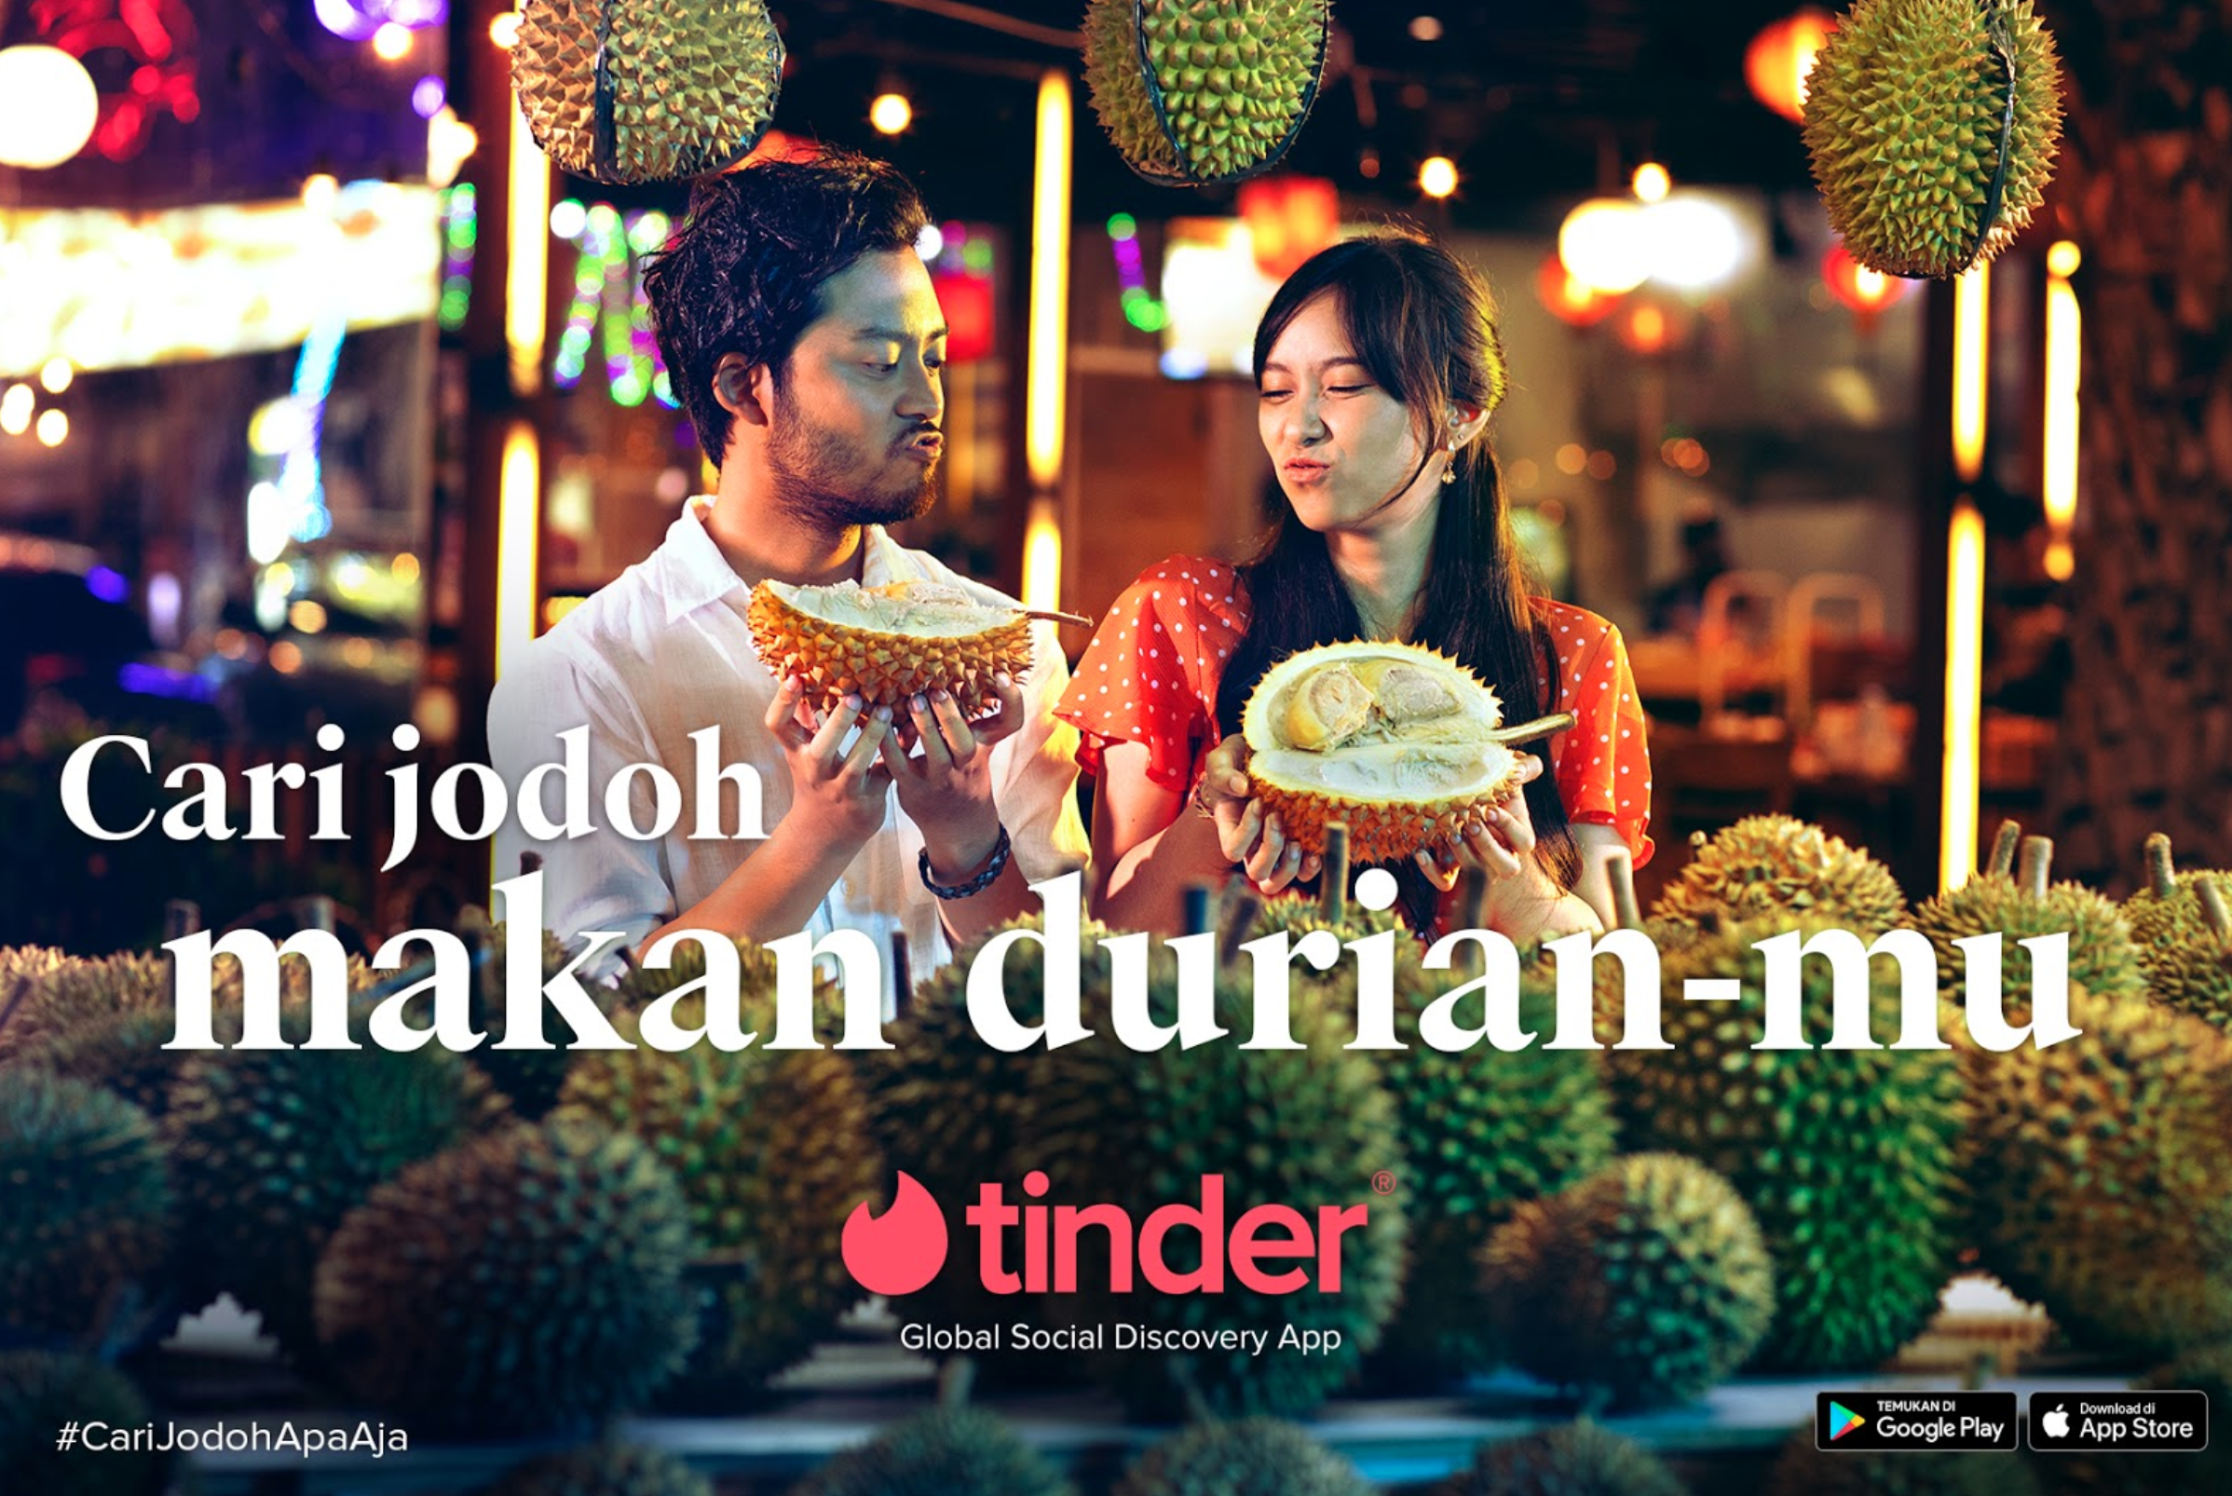 Tinder Rolls Out Major Marketing Campaign in South East Asia